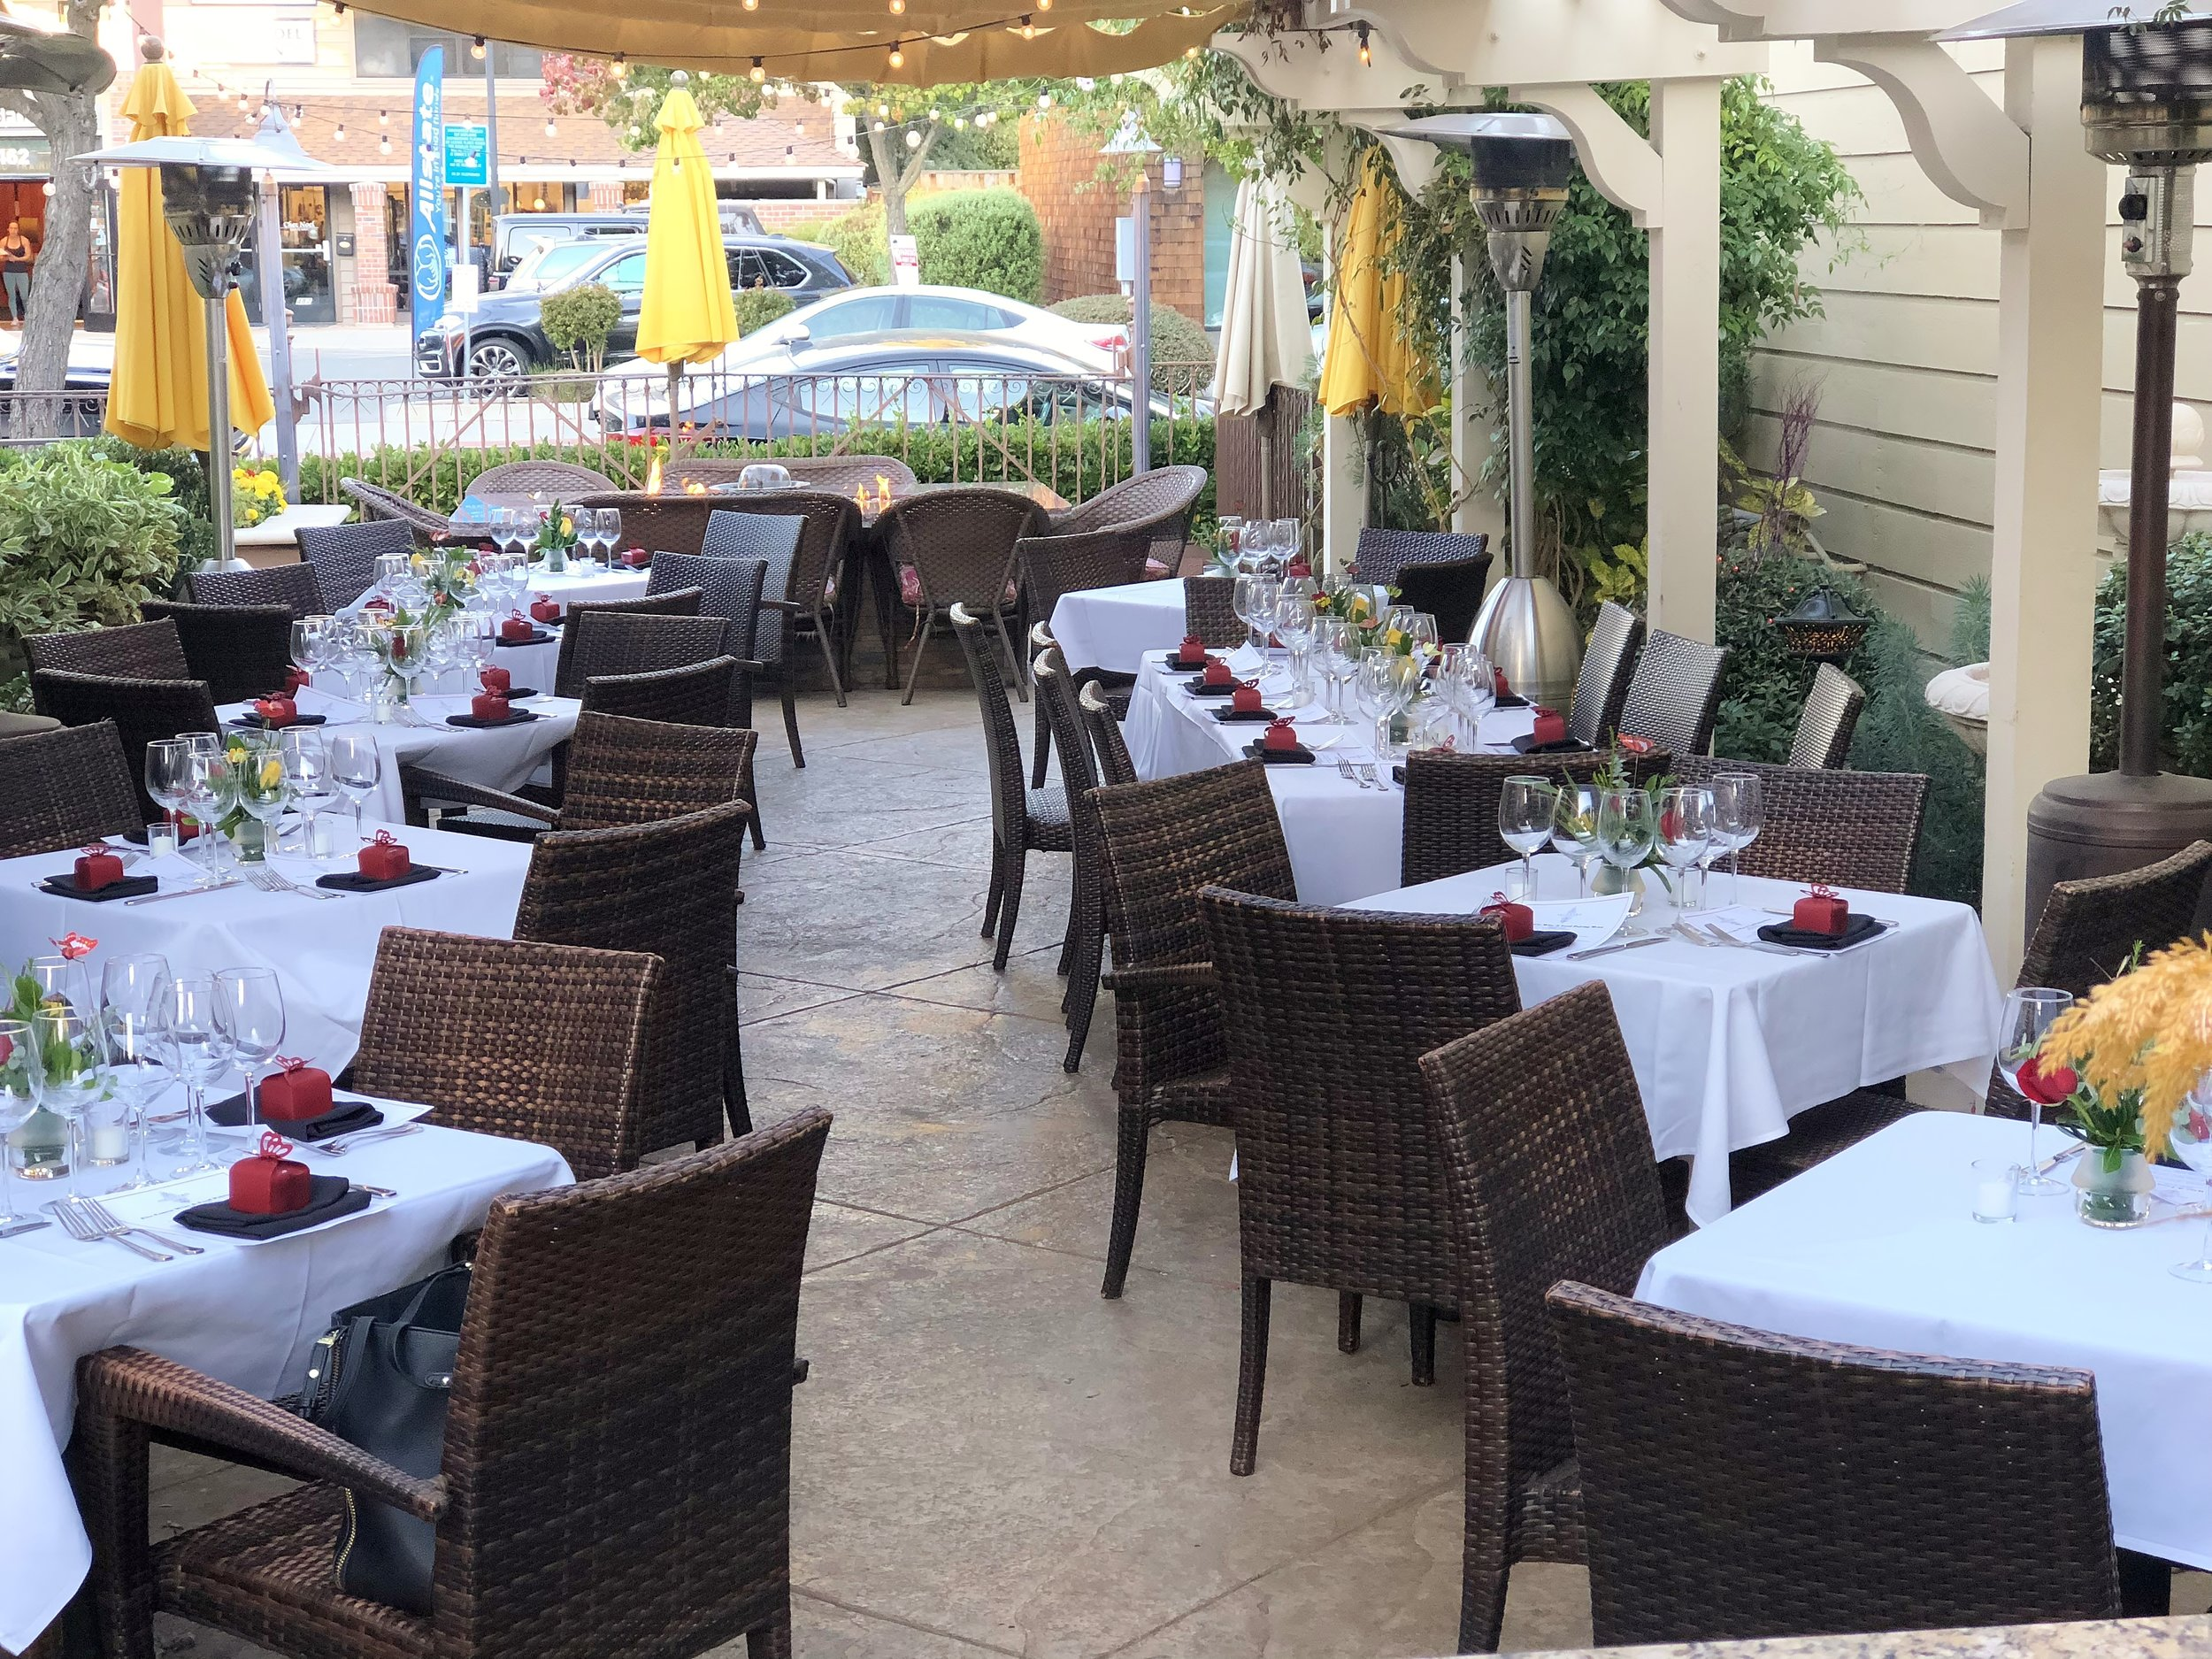 Garden patio set up for a private event